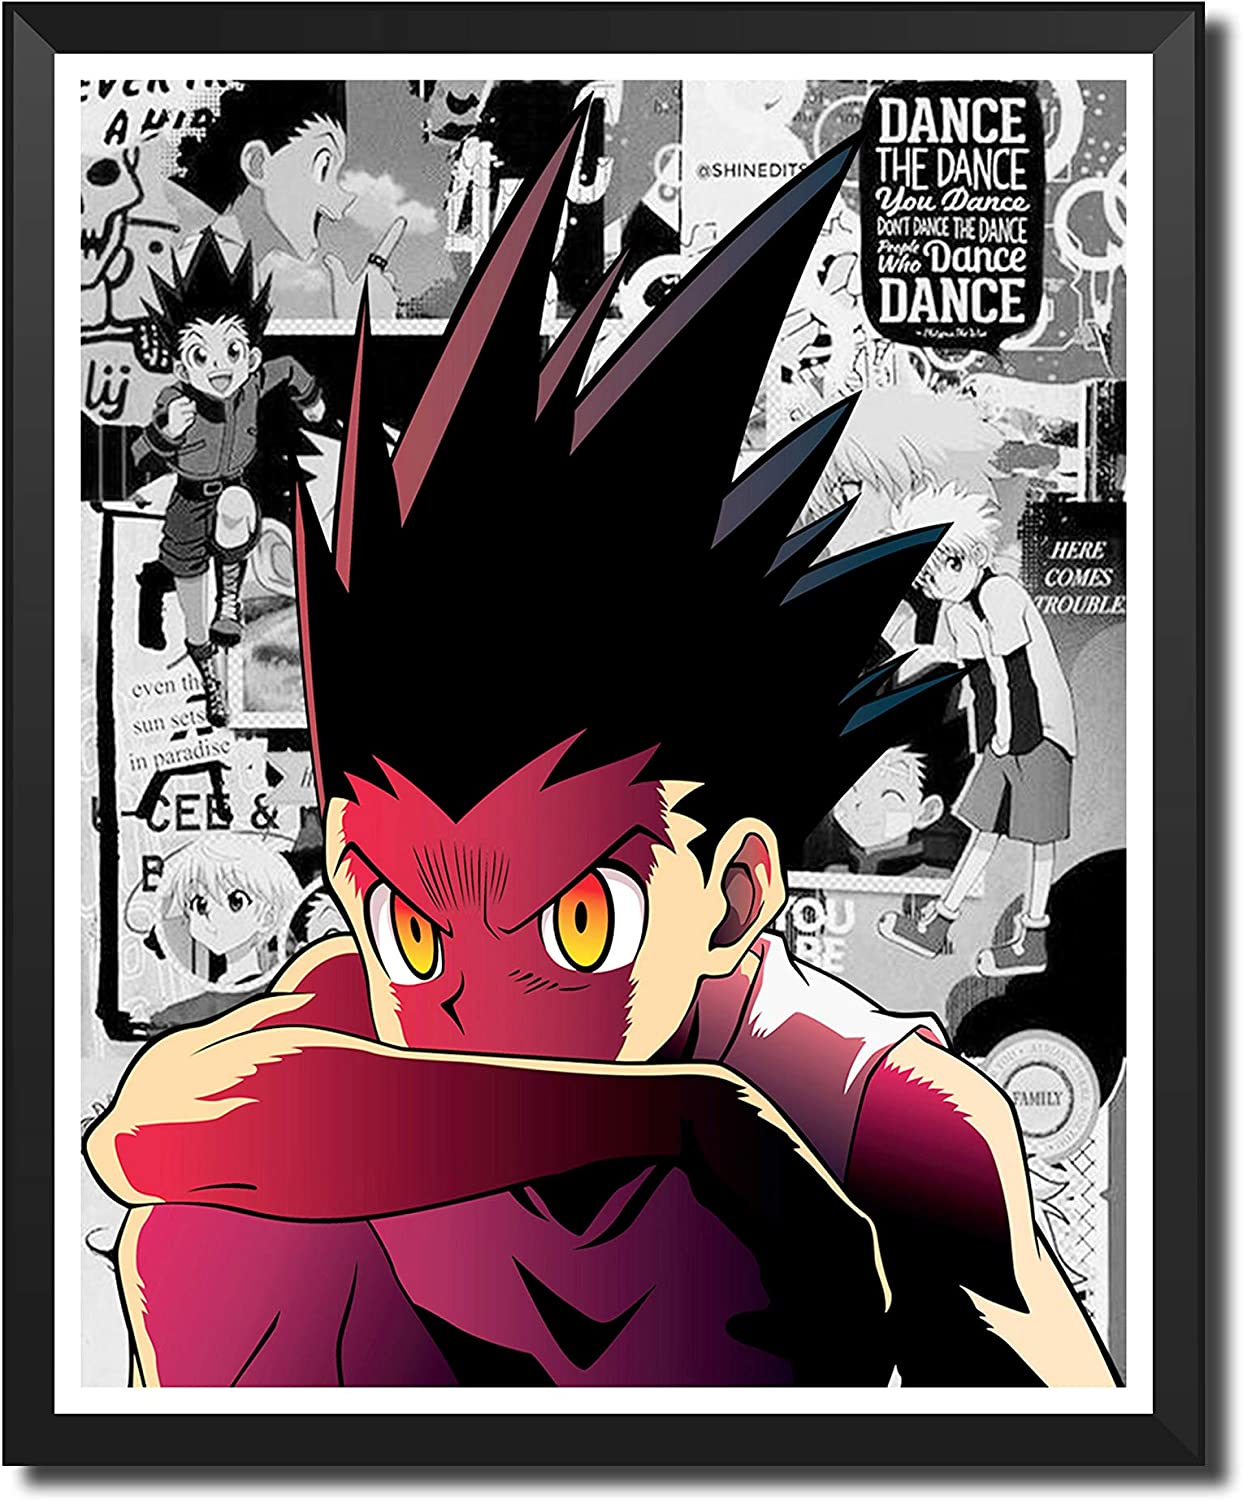 Yansang Anime Hunter x Hunter GON Used For Bathroom Decor Wall Decor Home Decor Canvas Print Poster,Unframed,8 x 10 Inches,Set of 1 Piece